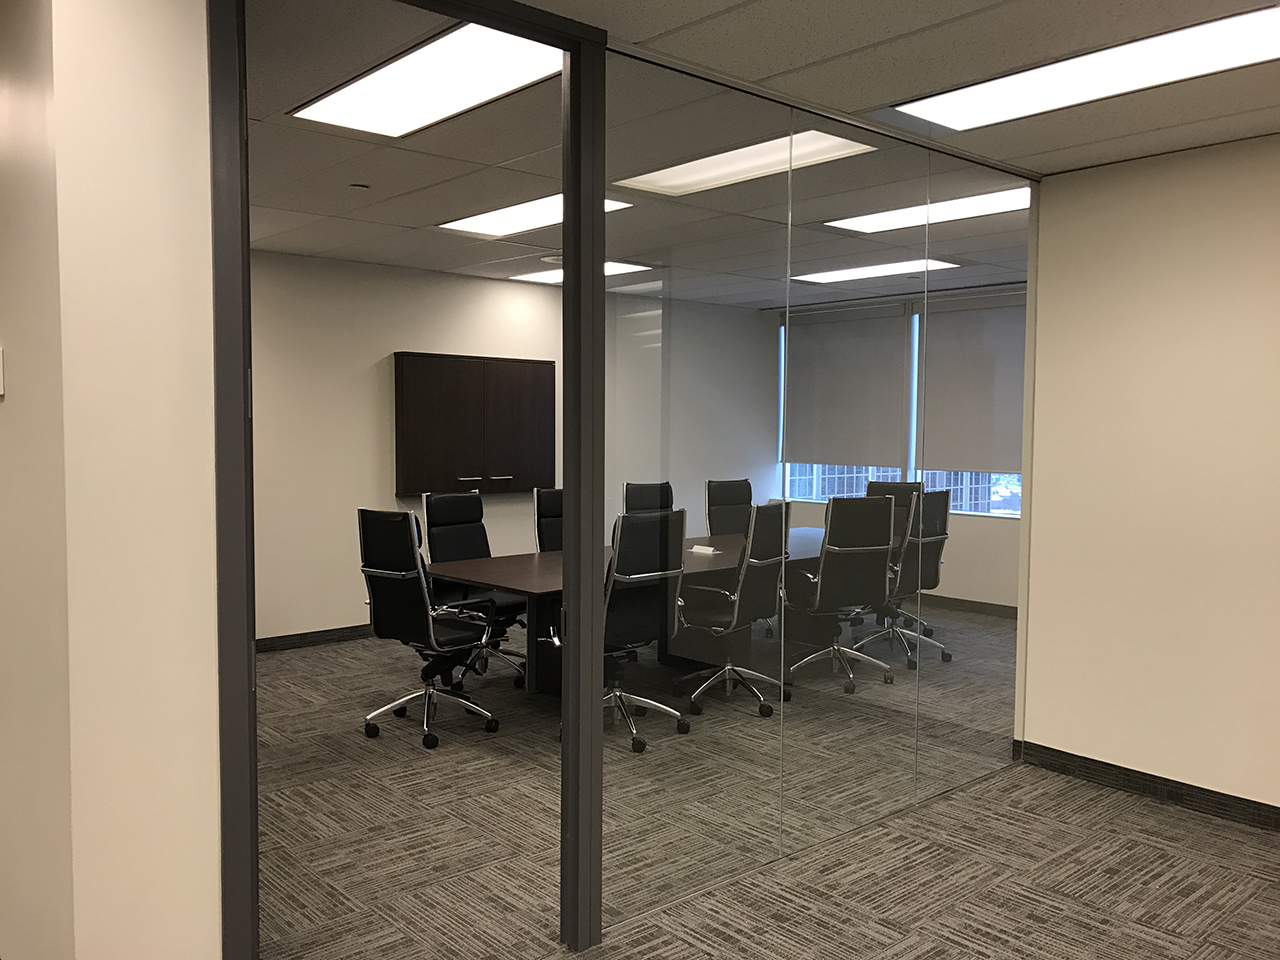 Office Remodeling Is One Of Brama Speciality Services. As Commercial And  Industrial Flooring Contractors We Know That Office Remodeling Can Range  From ...